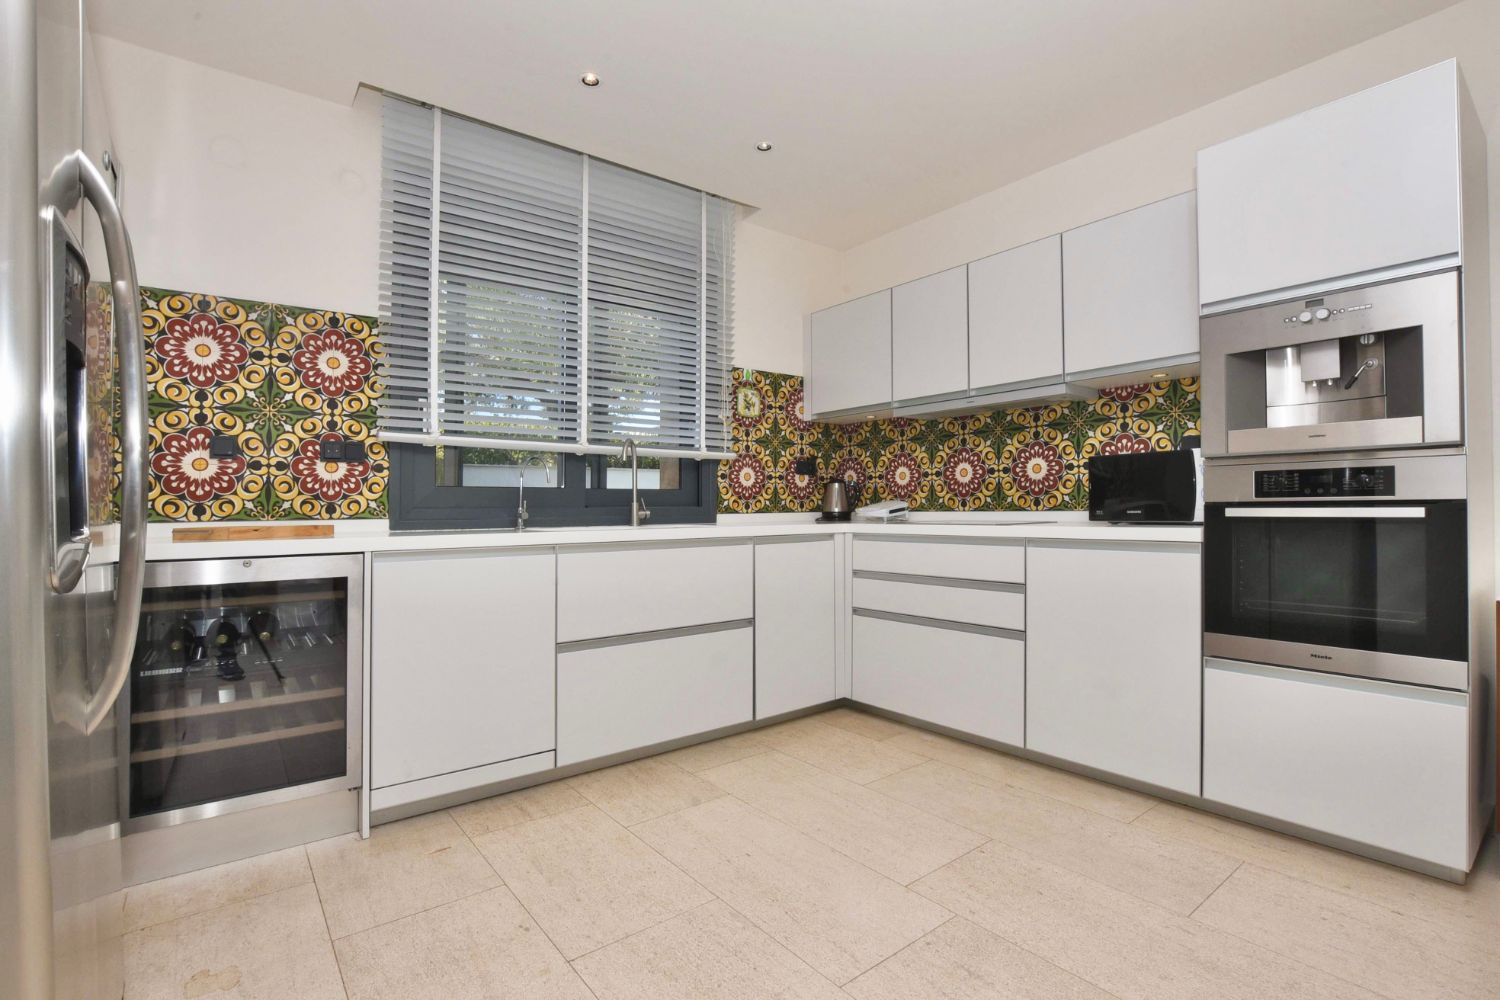 Fully Equipped Kitchen With A Wine Cooler